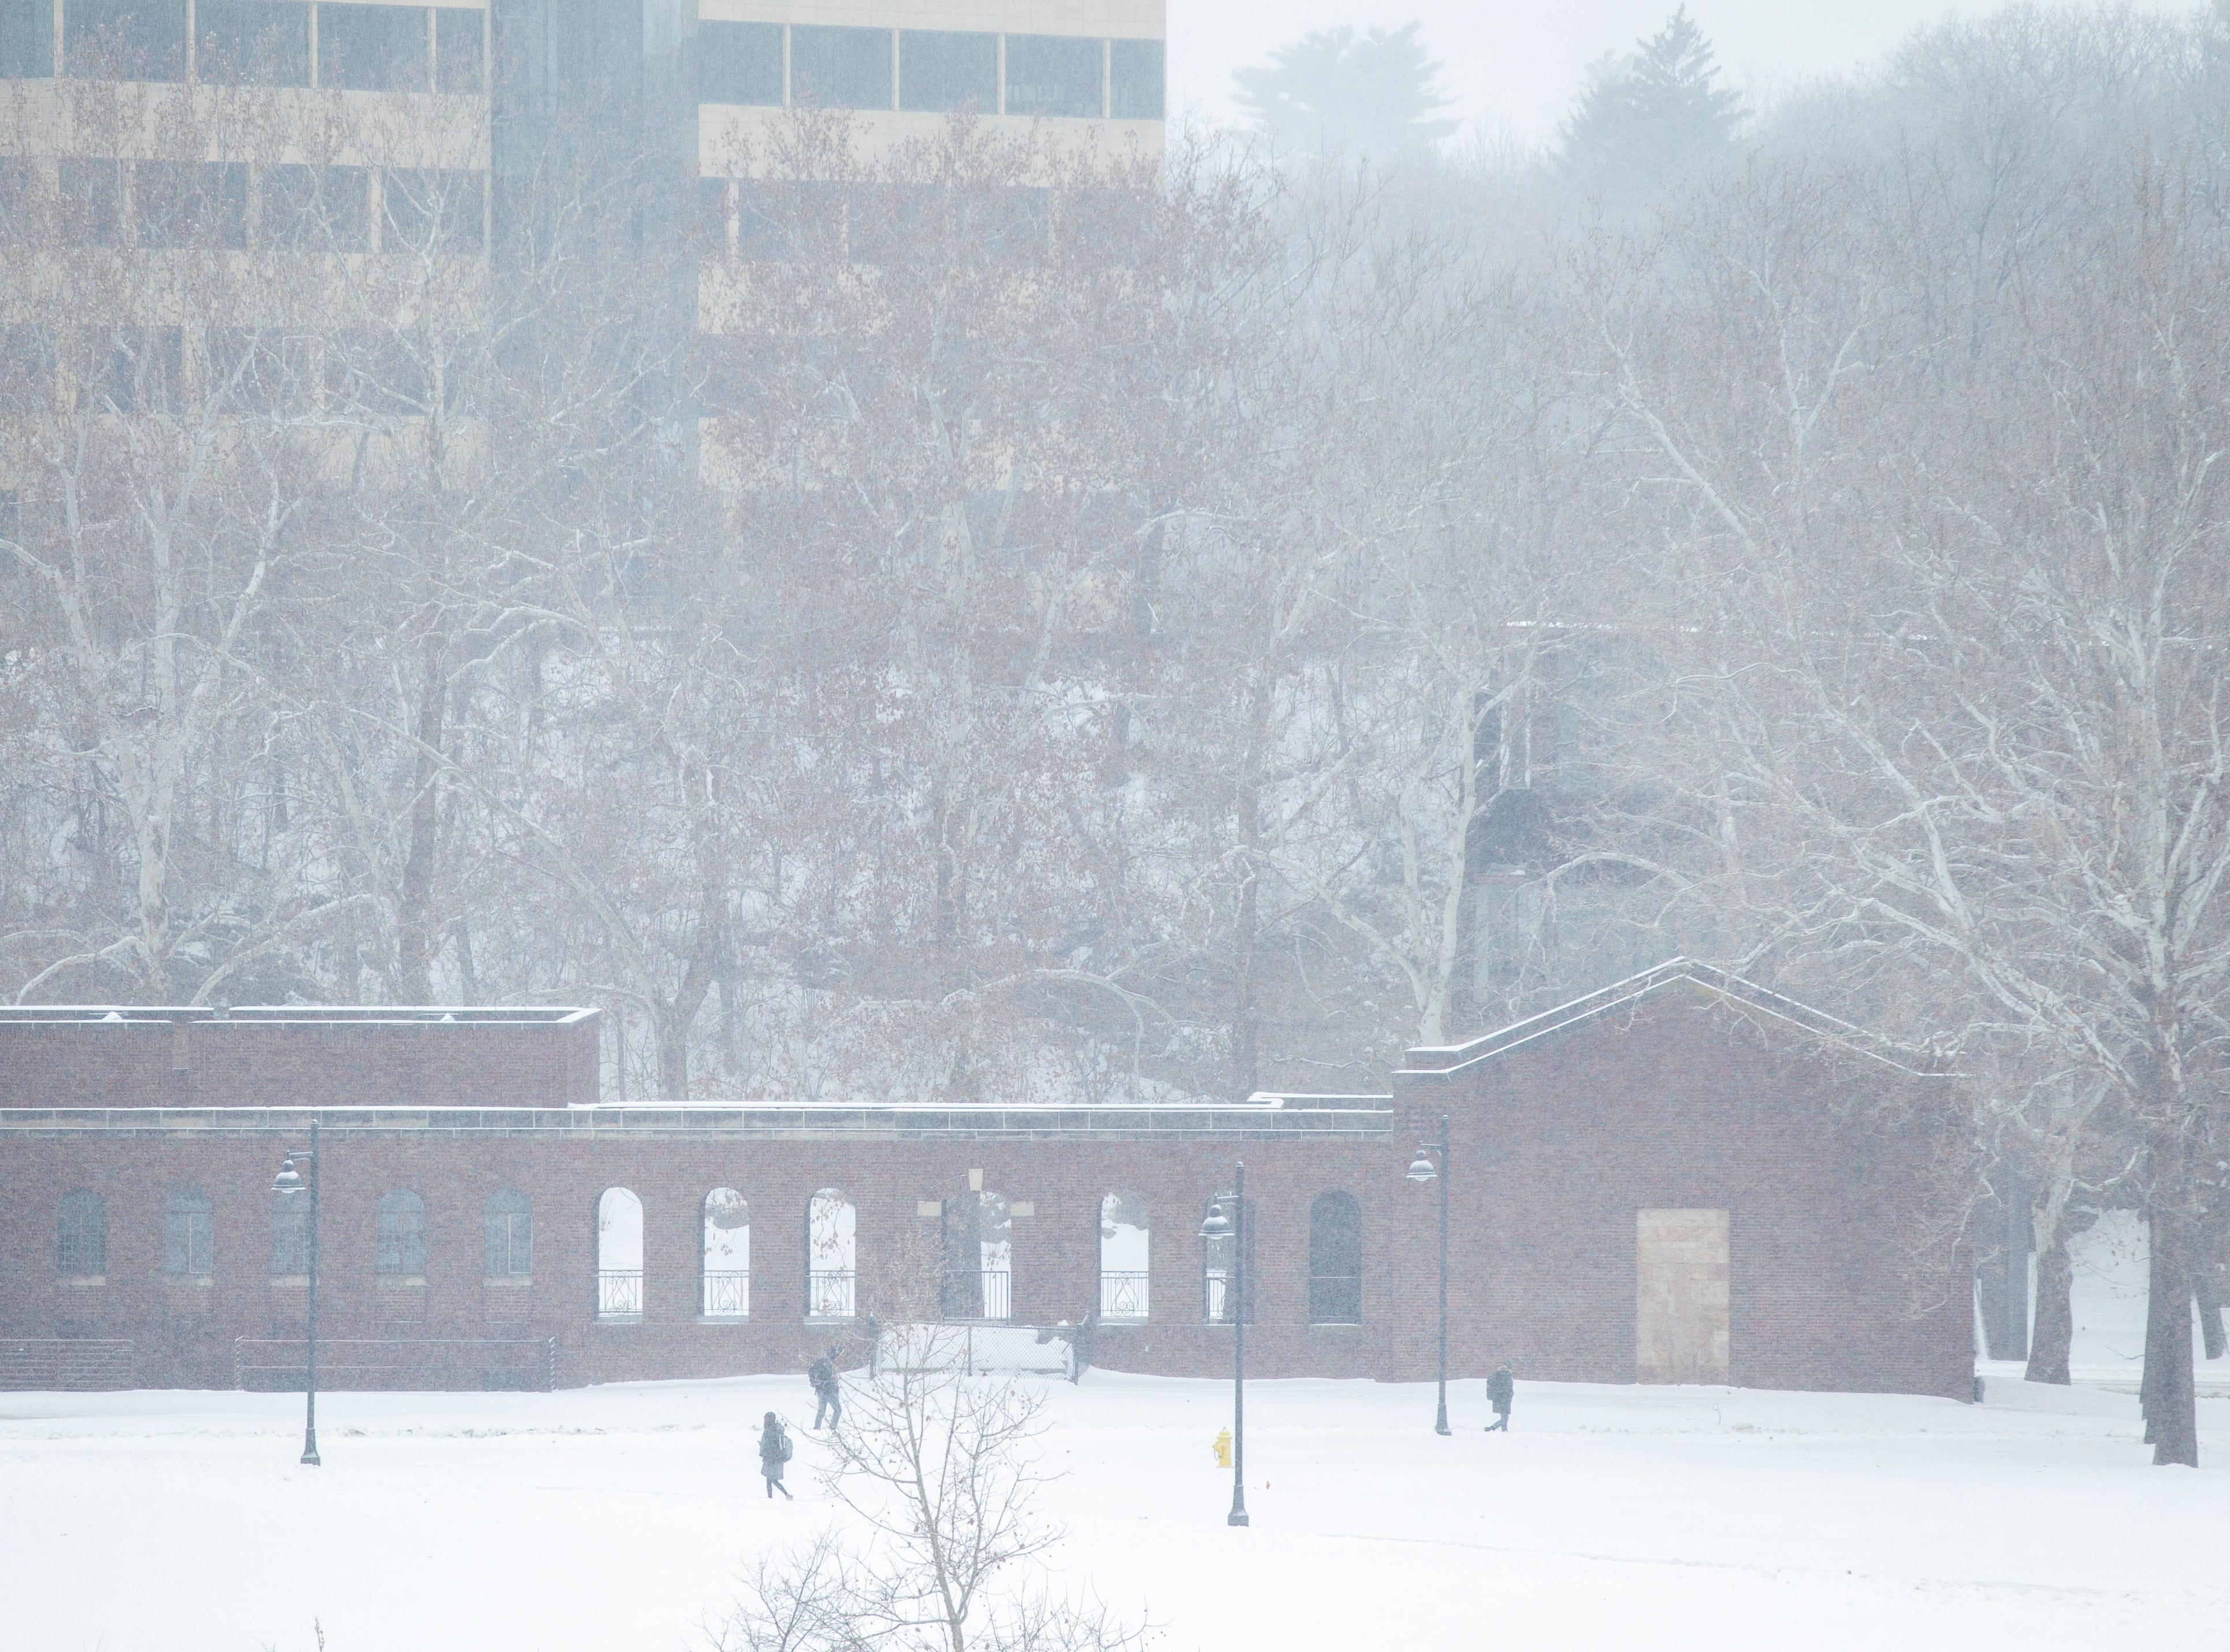 Students walk along the west side of campus as light snow falls on Tuesday, Jan. 22, 2019, in Iowa City, Iowa.